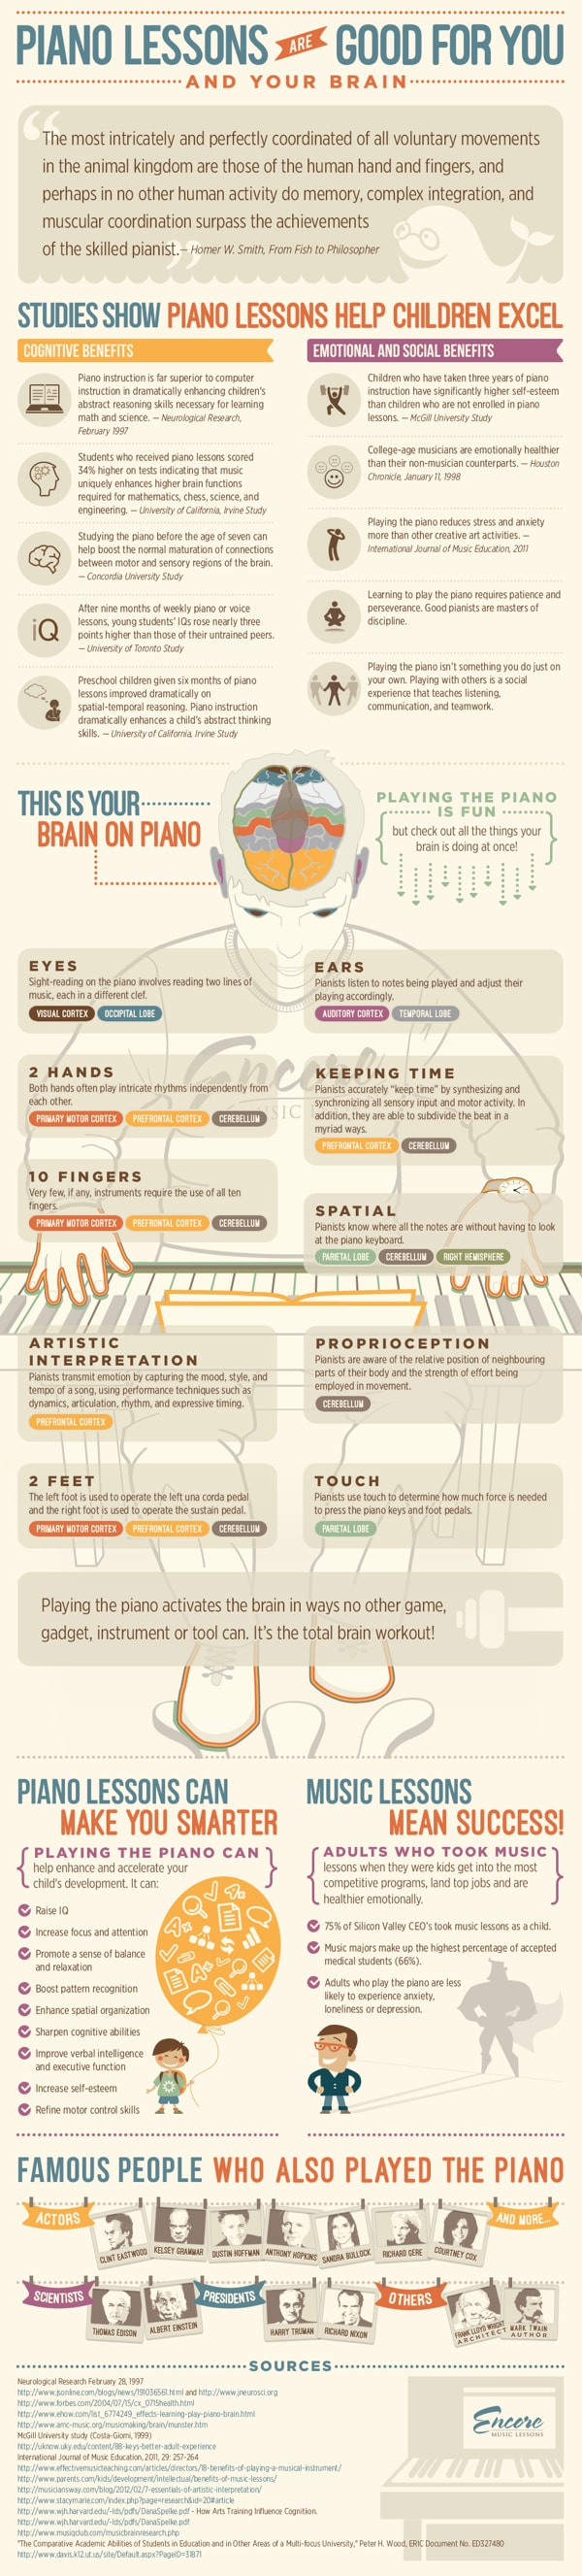 piano-lessons-infographic.jpg